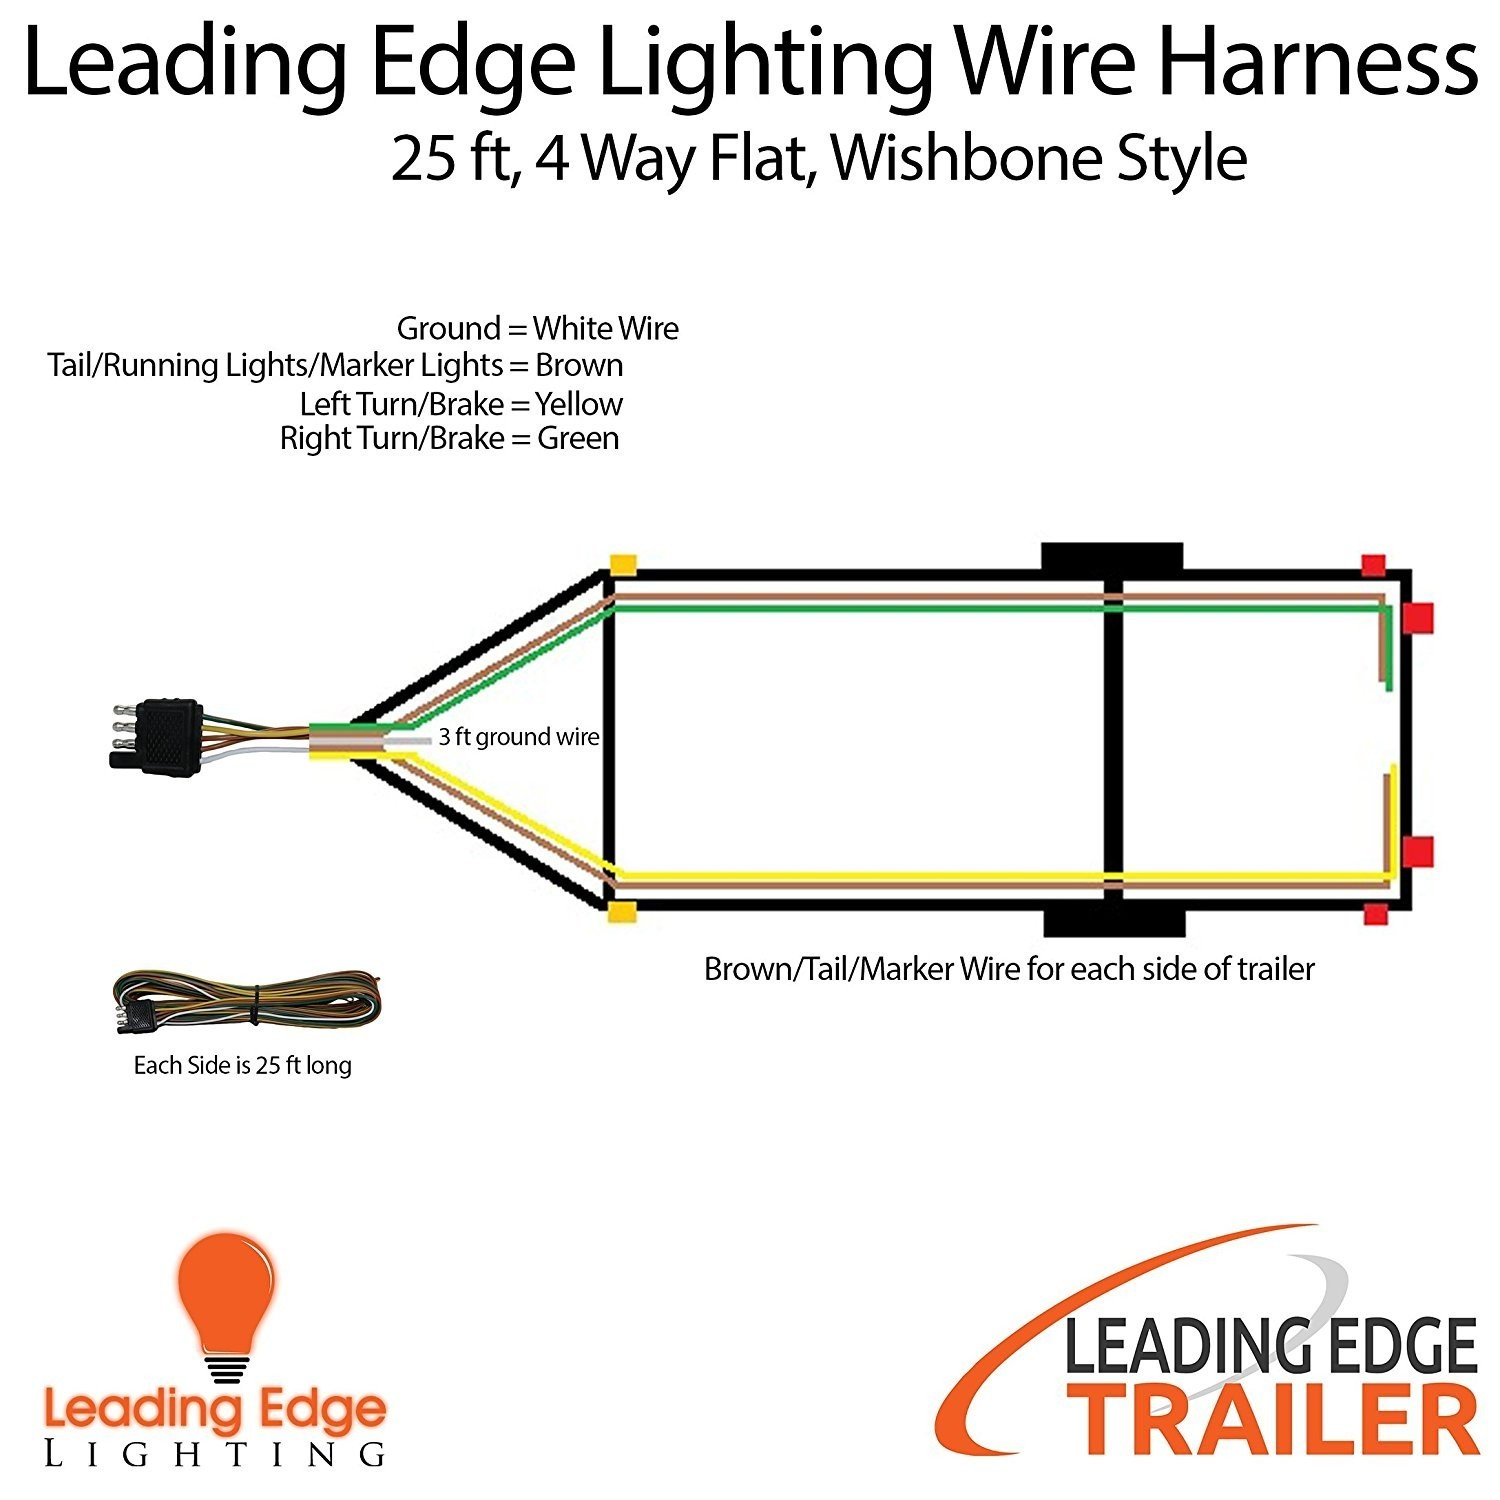 4 Wire Flat Trailer Wiring Diagram from wholefoodsonabudget.com